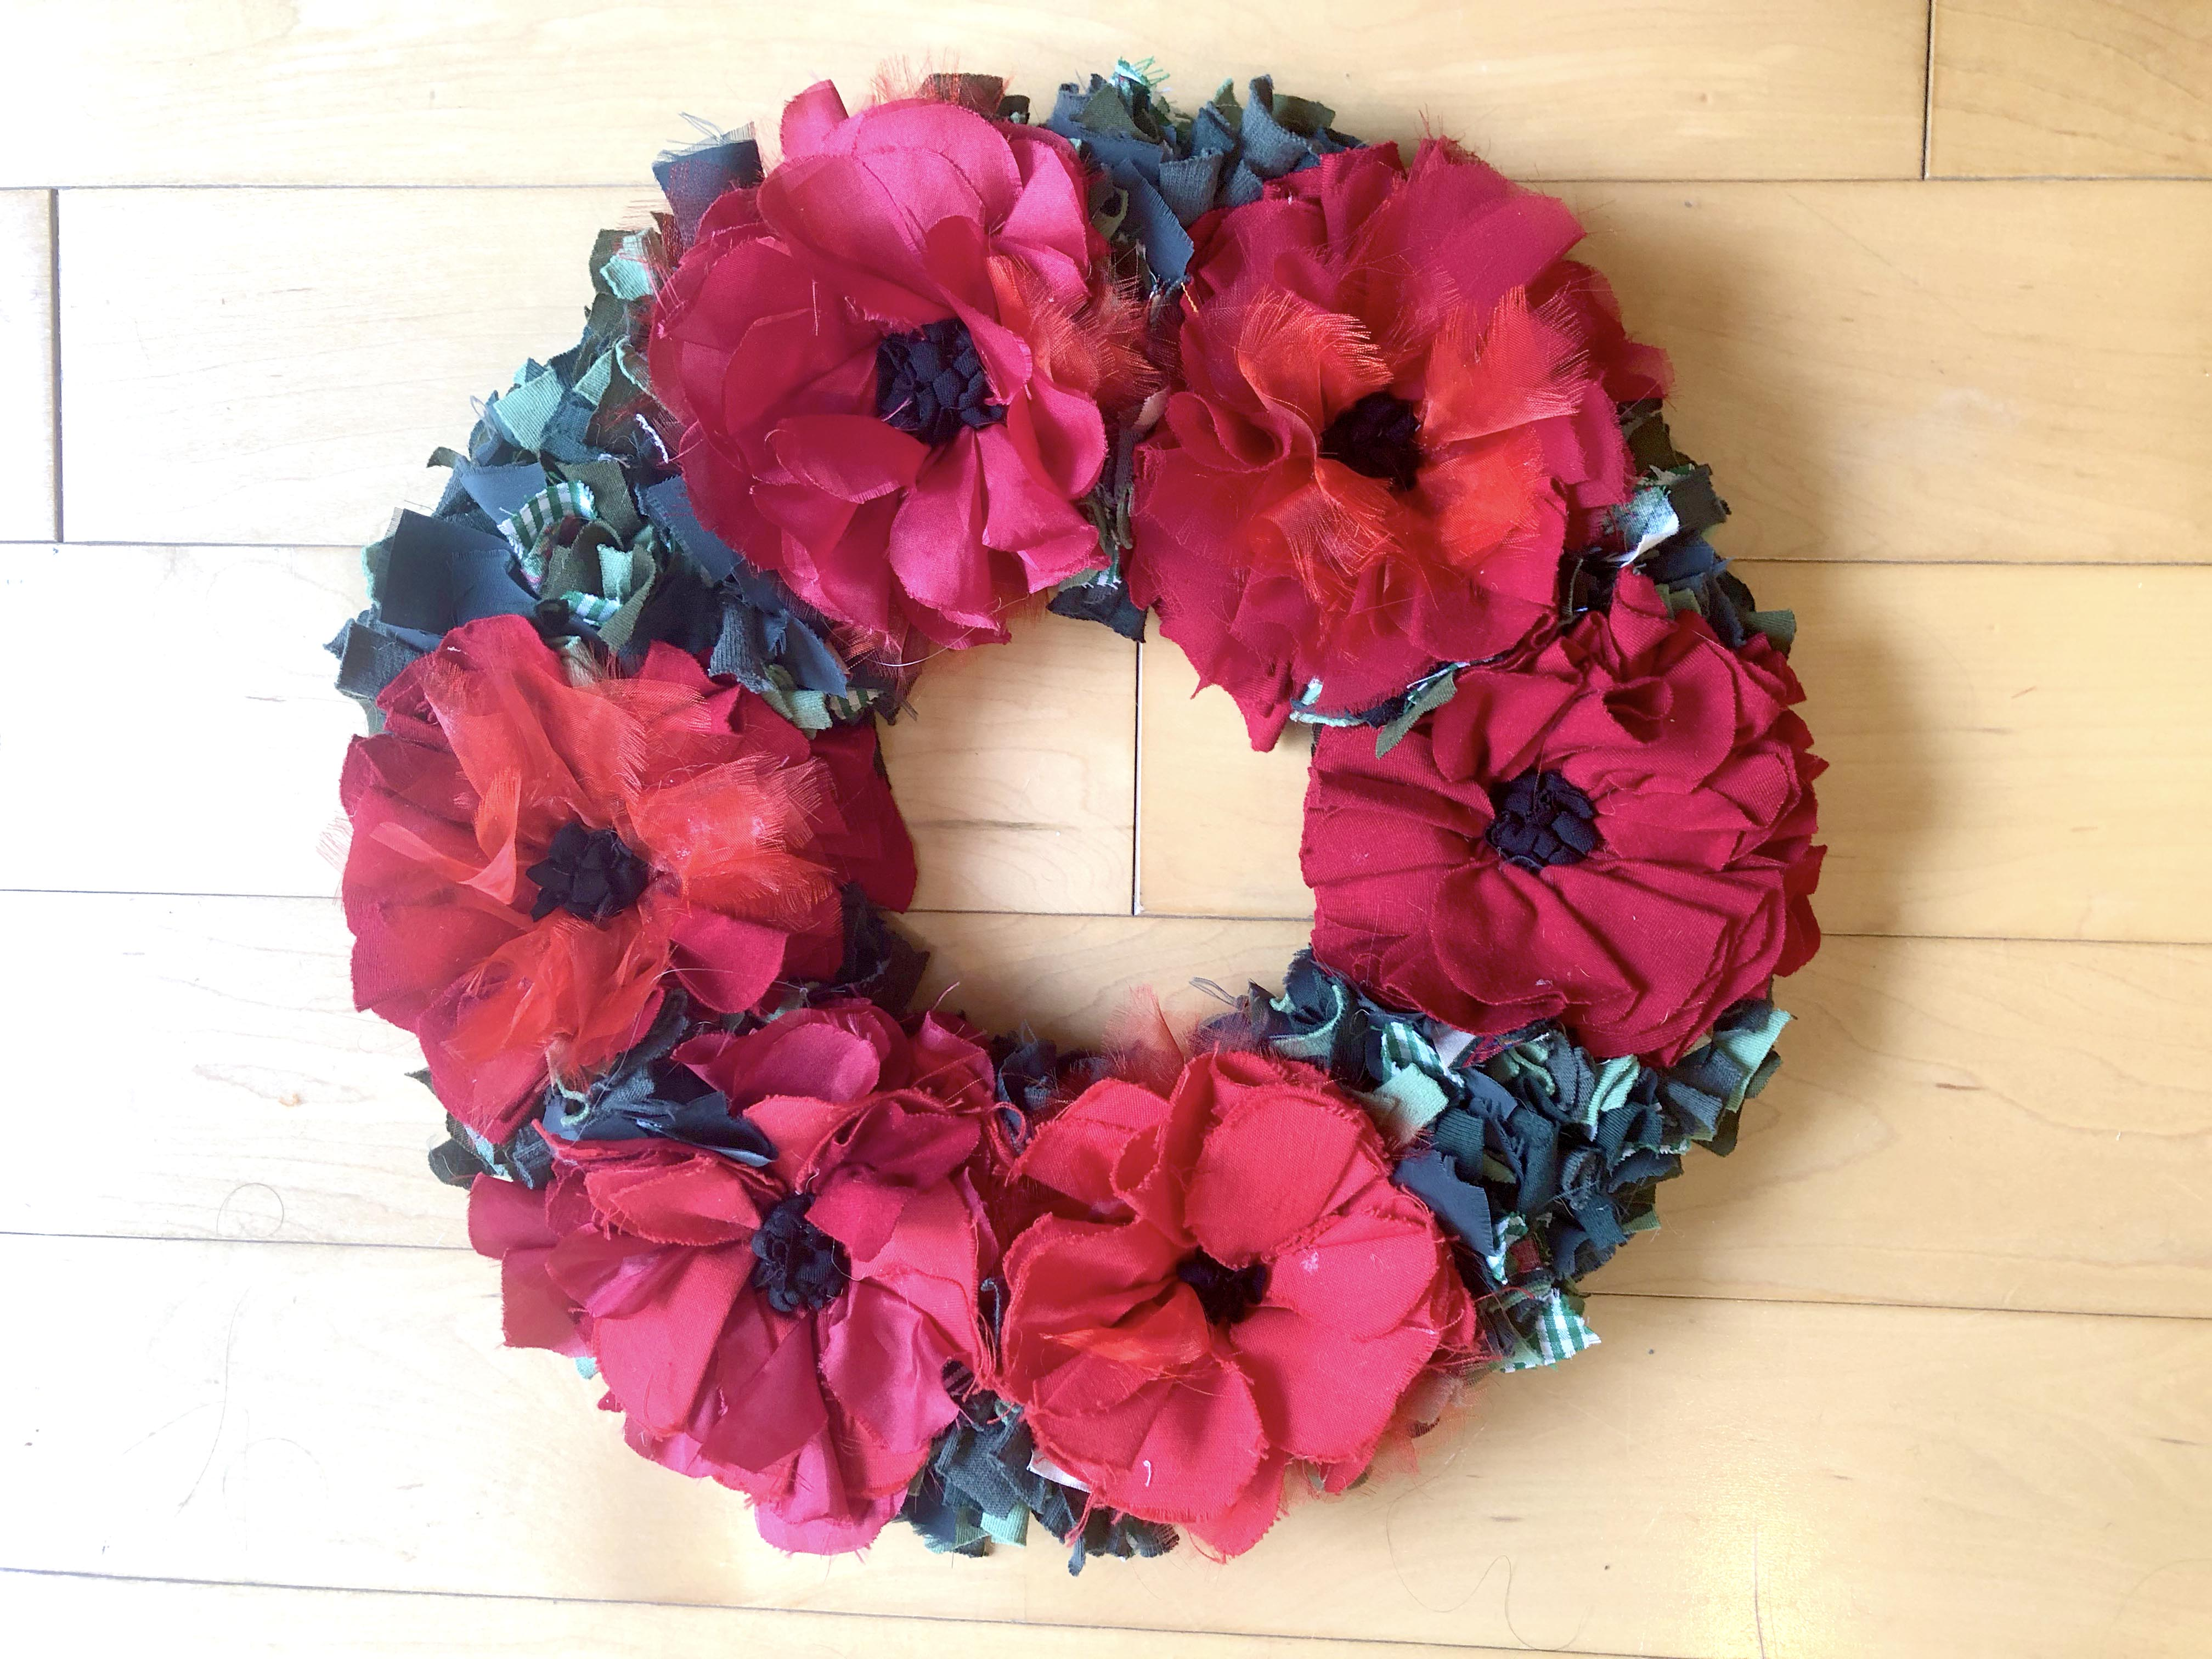 Remembrance day rag rug poppy wreath made using recycled textile waste. Red poppies with green fabric in between.